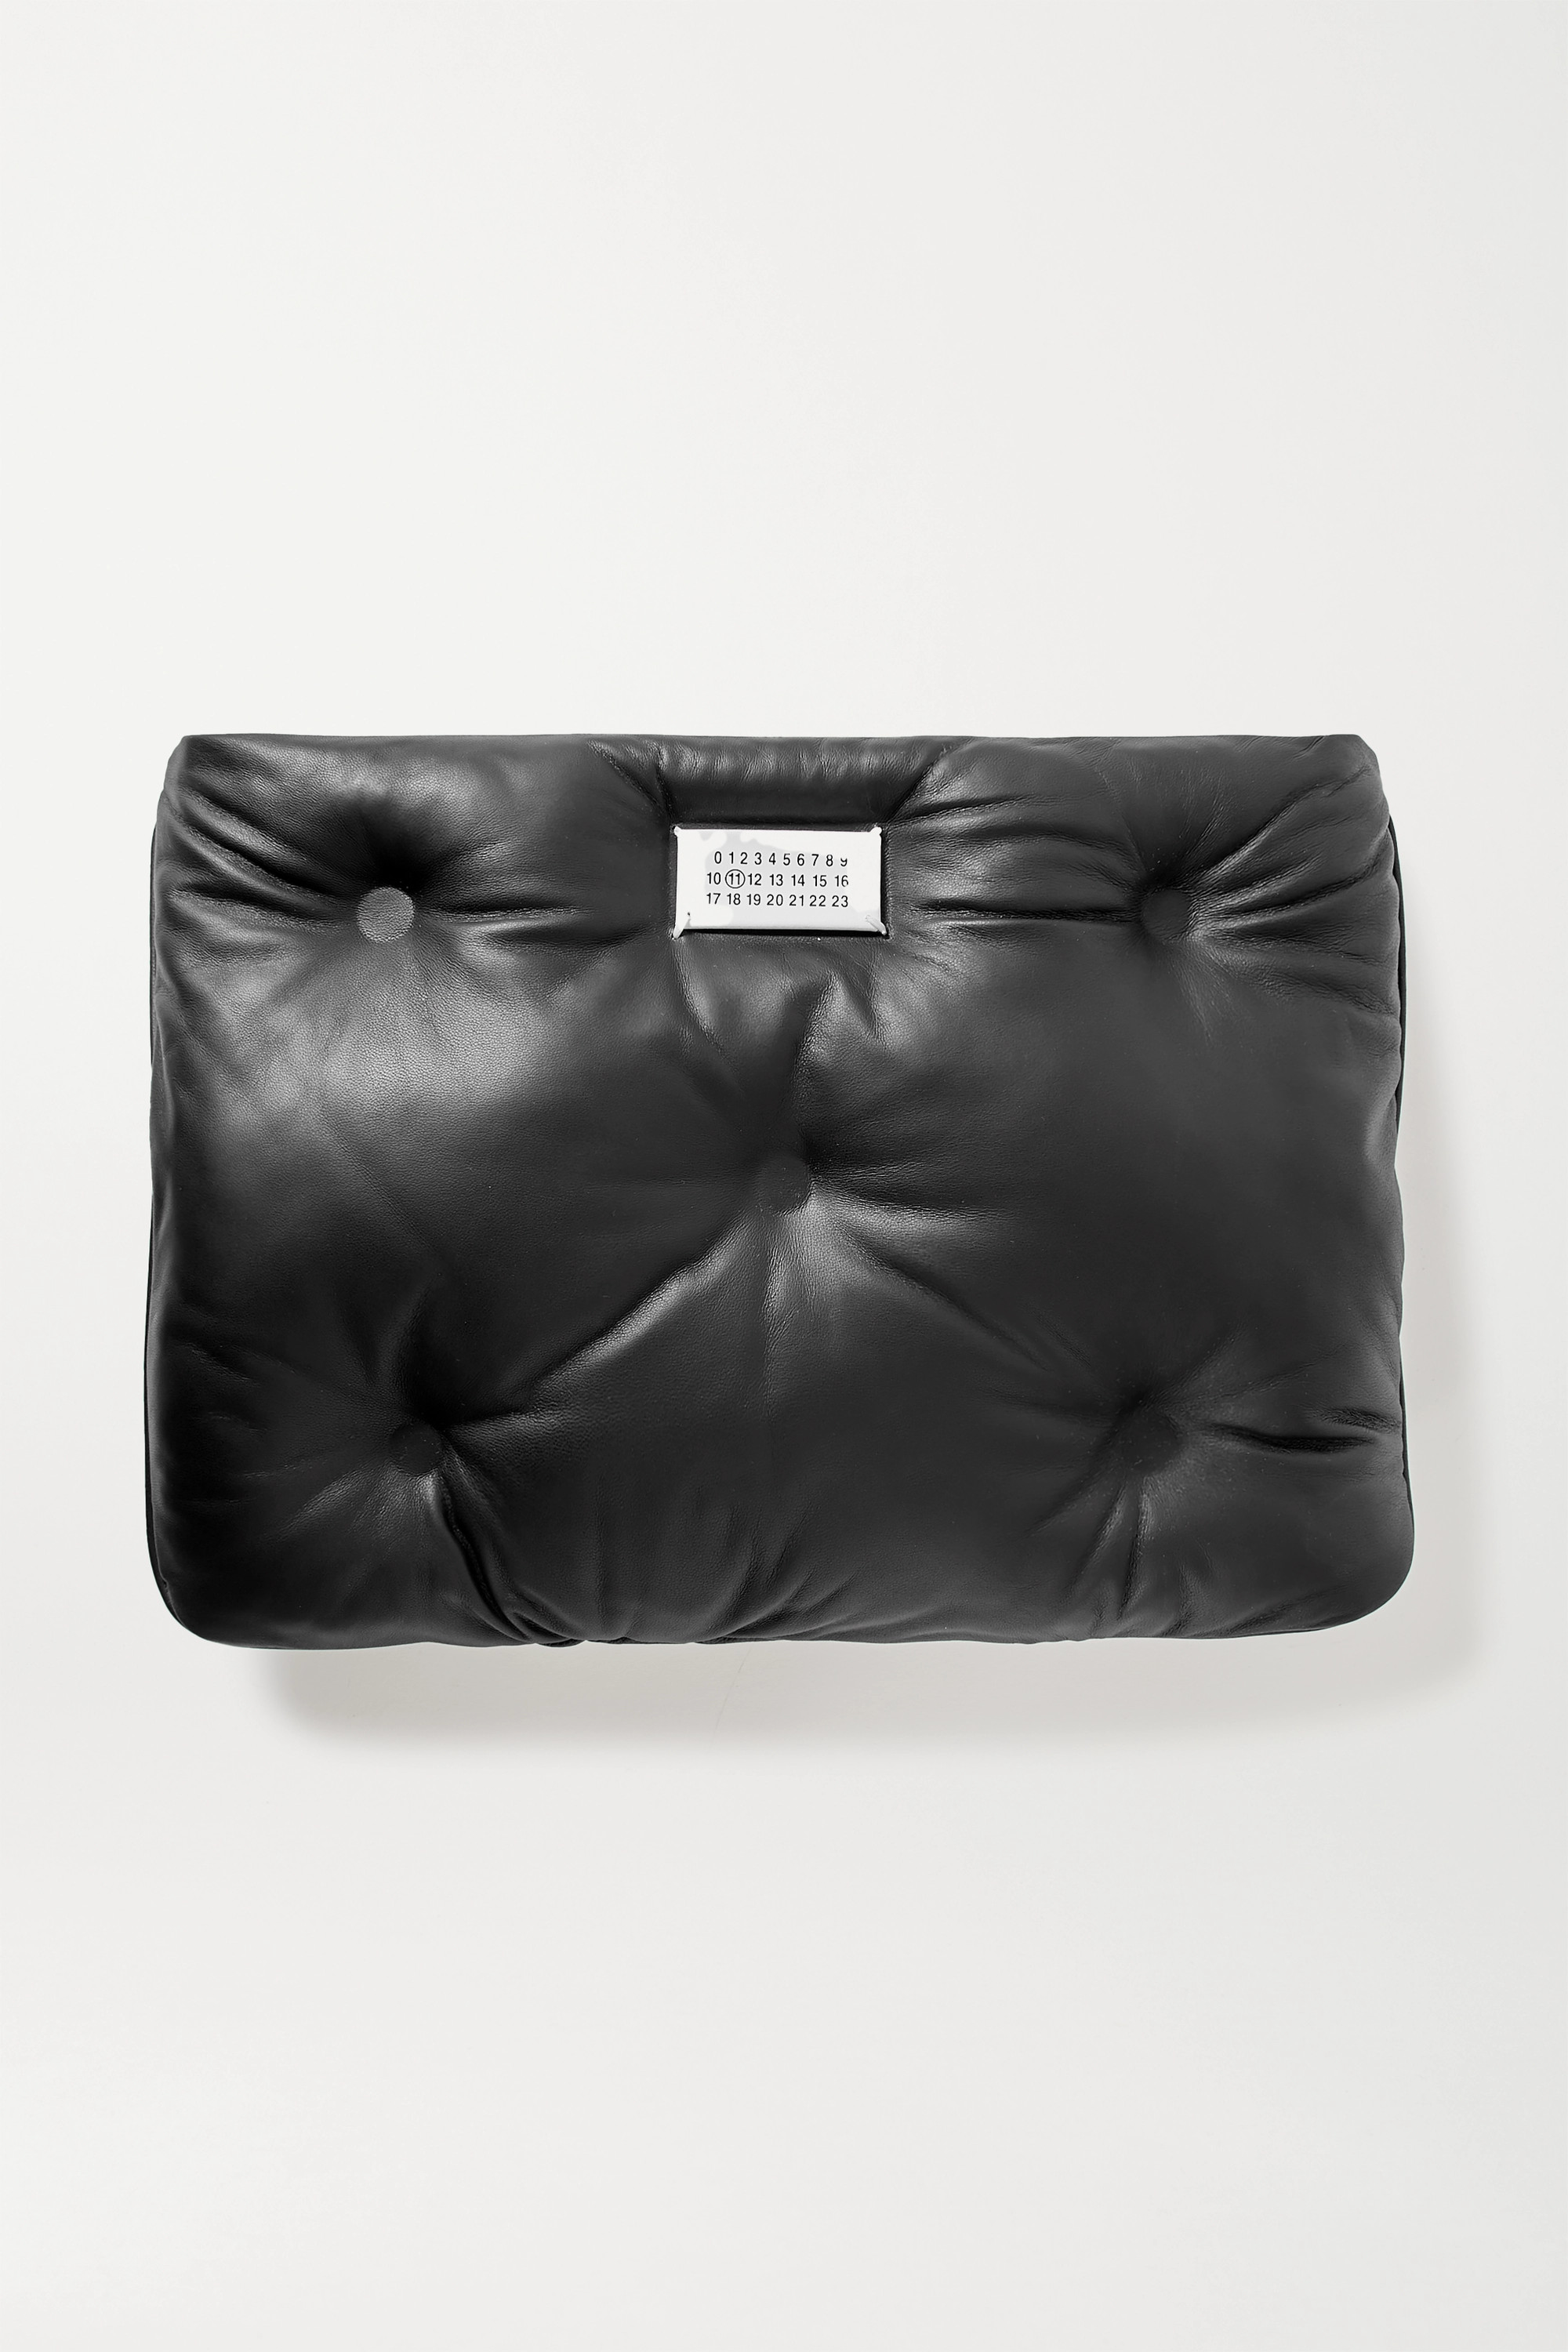 Maison Margiela Glam Slam quilted leather clutch